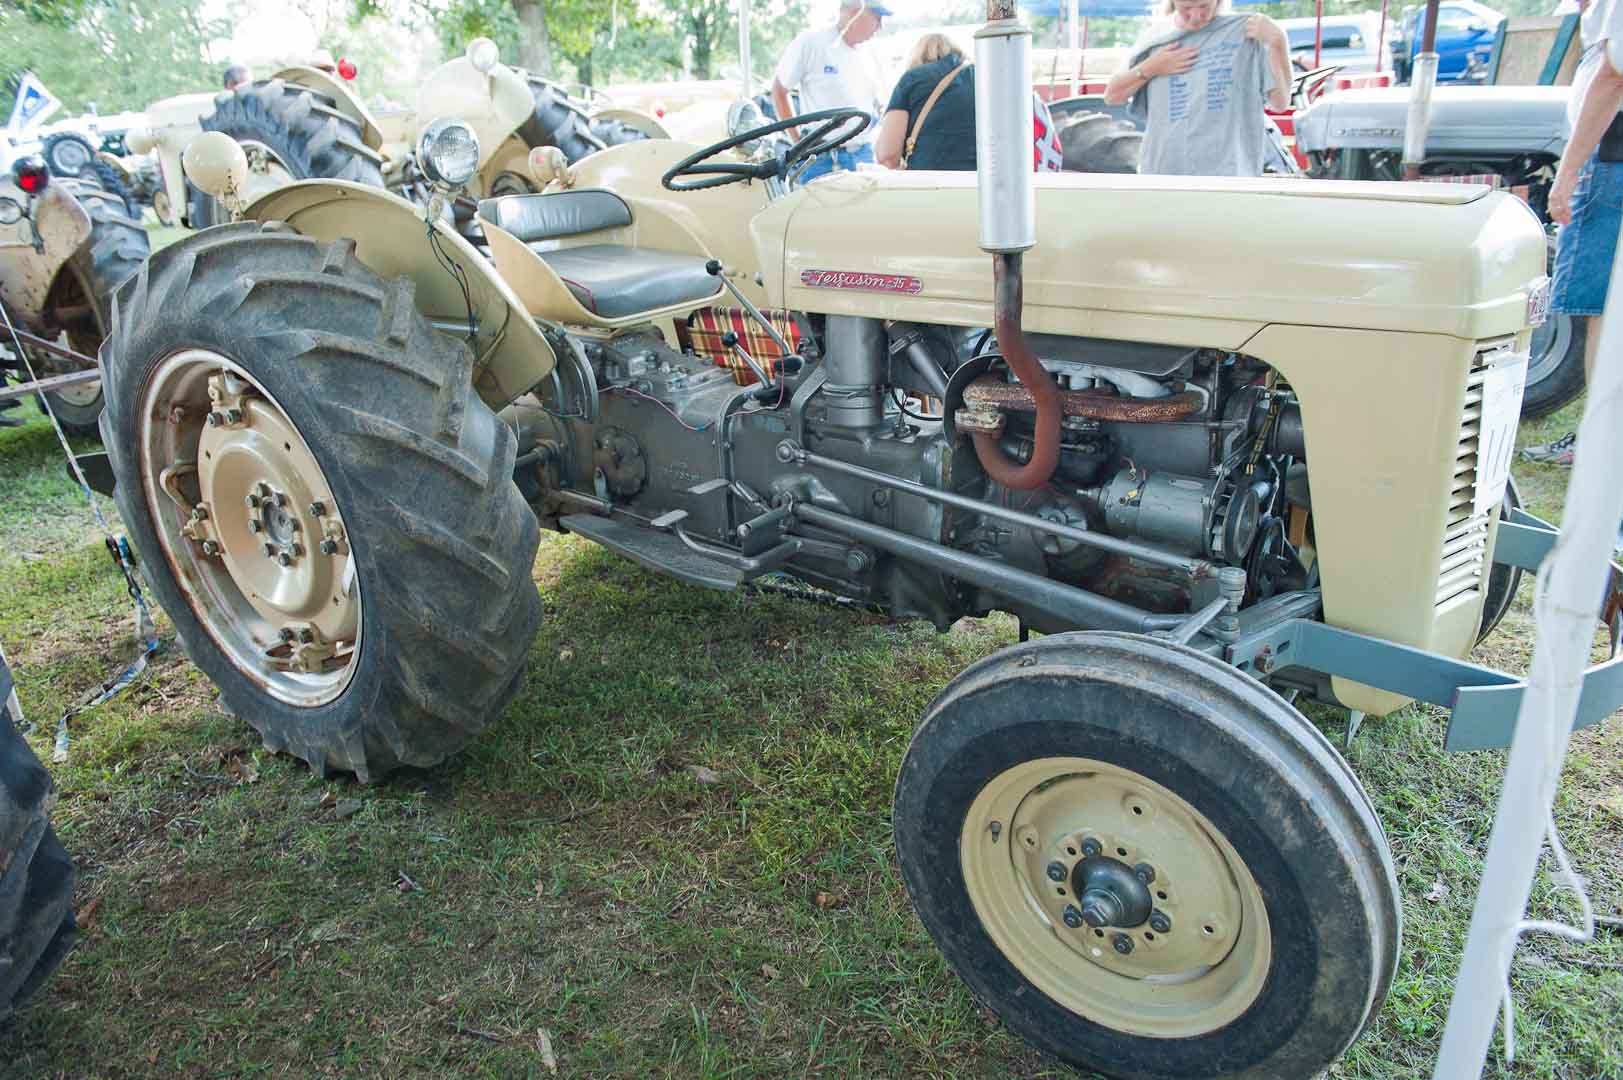 1957 Cream TO-35 owned by Melvin Sprague of Plainville, IL.